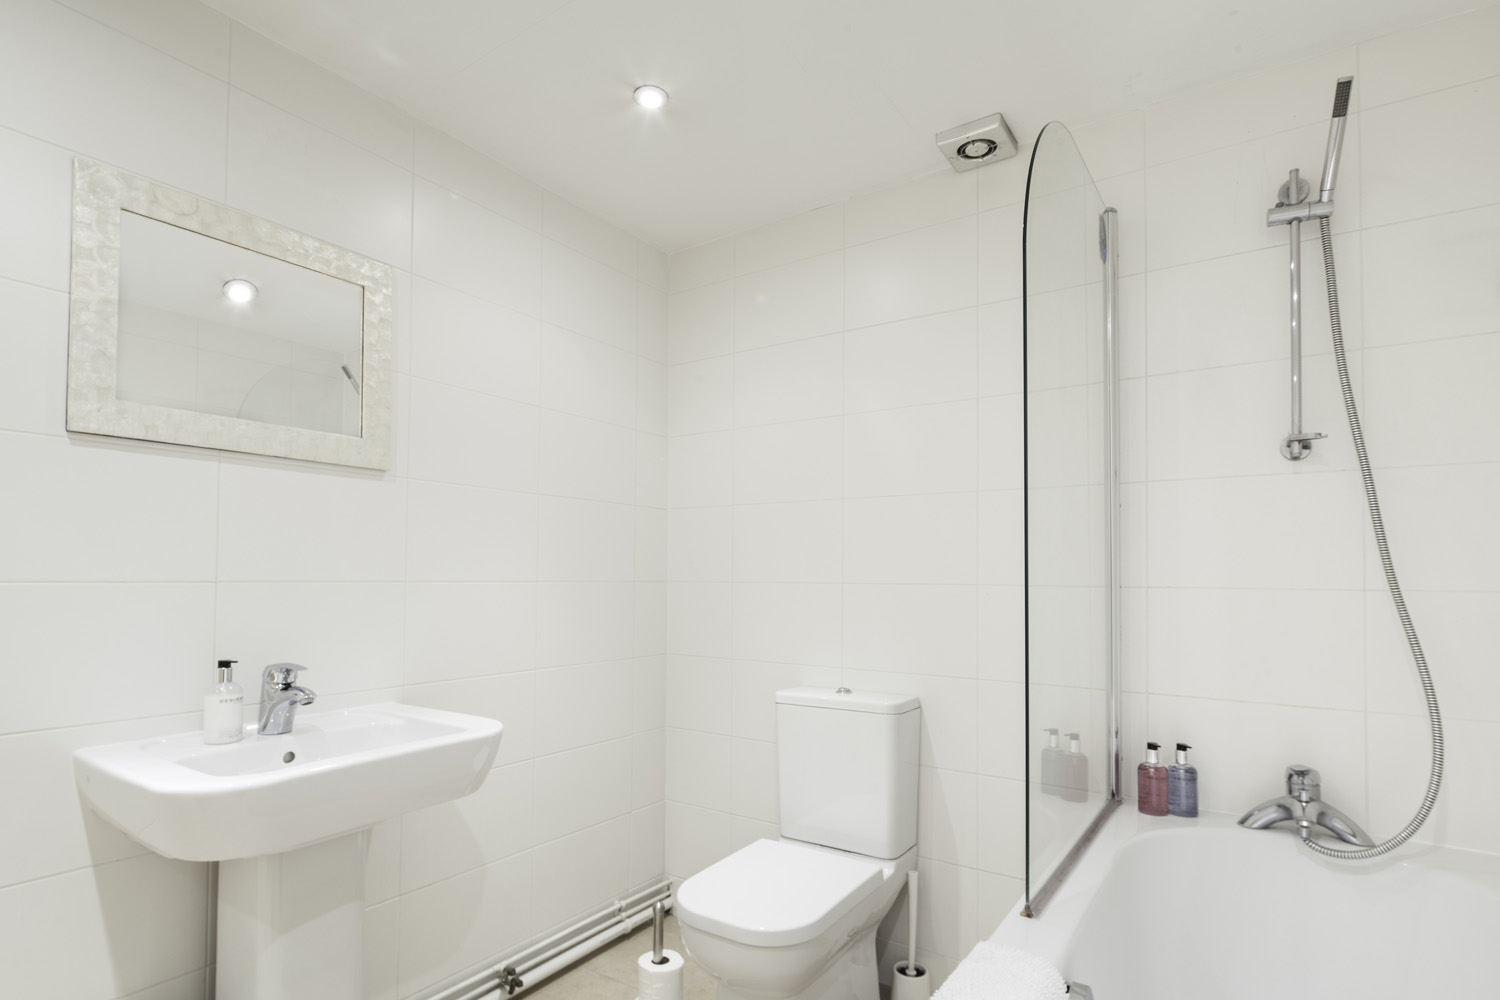 twin 2 bed serviced apartment Leicester - Bathroom